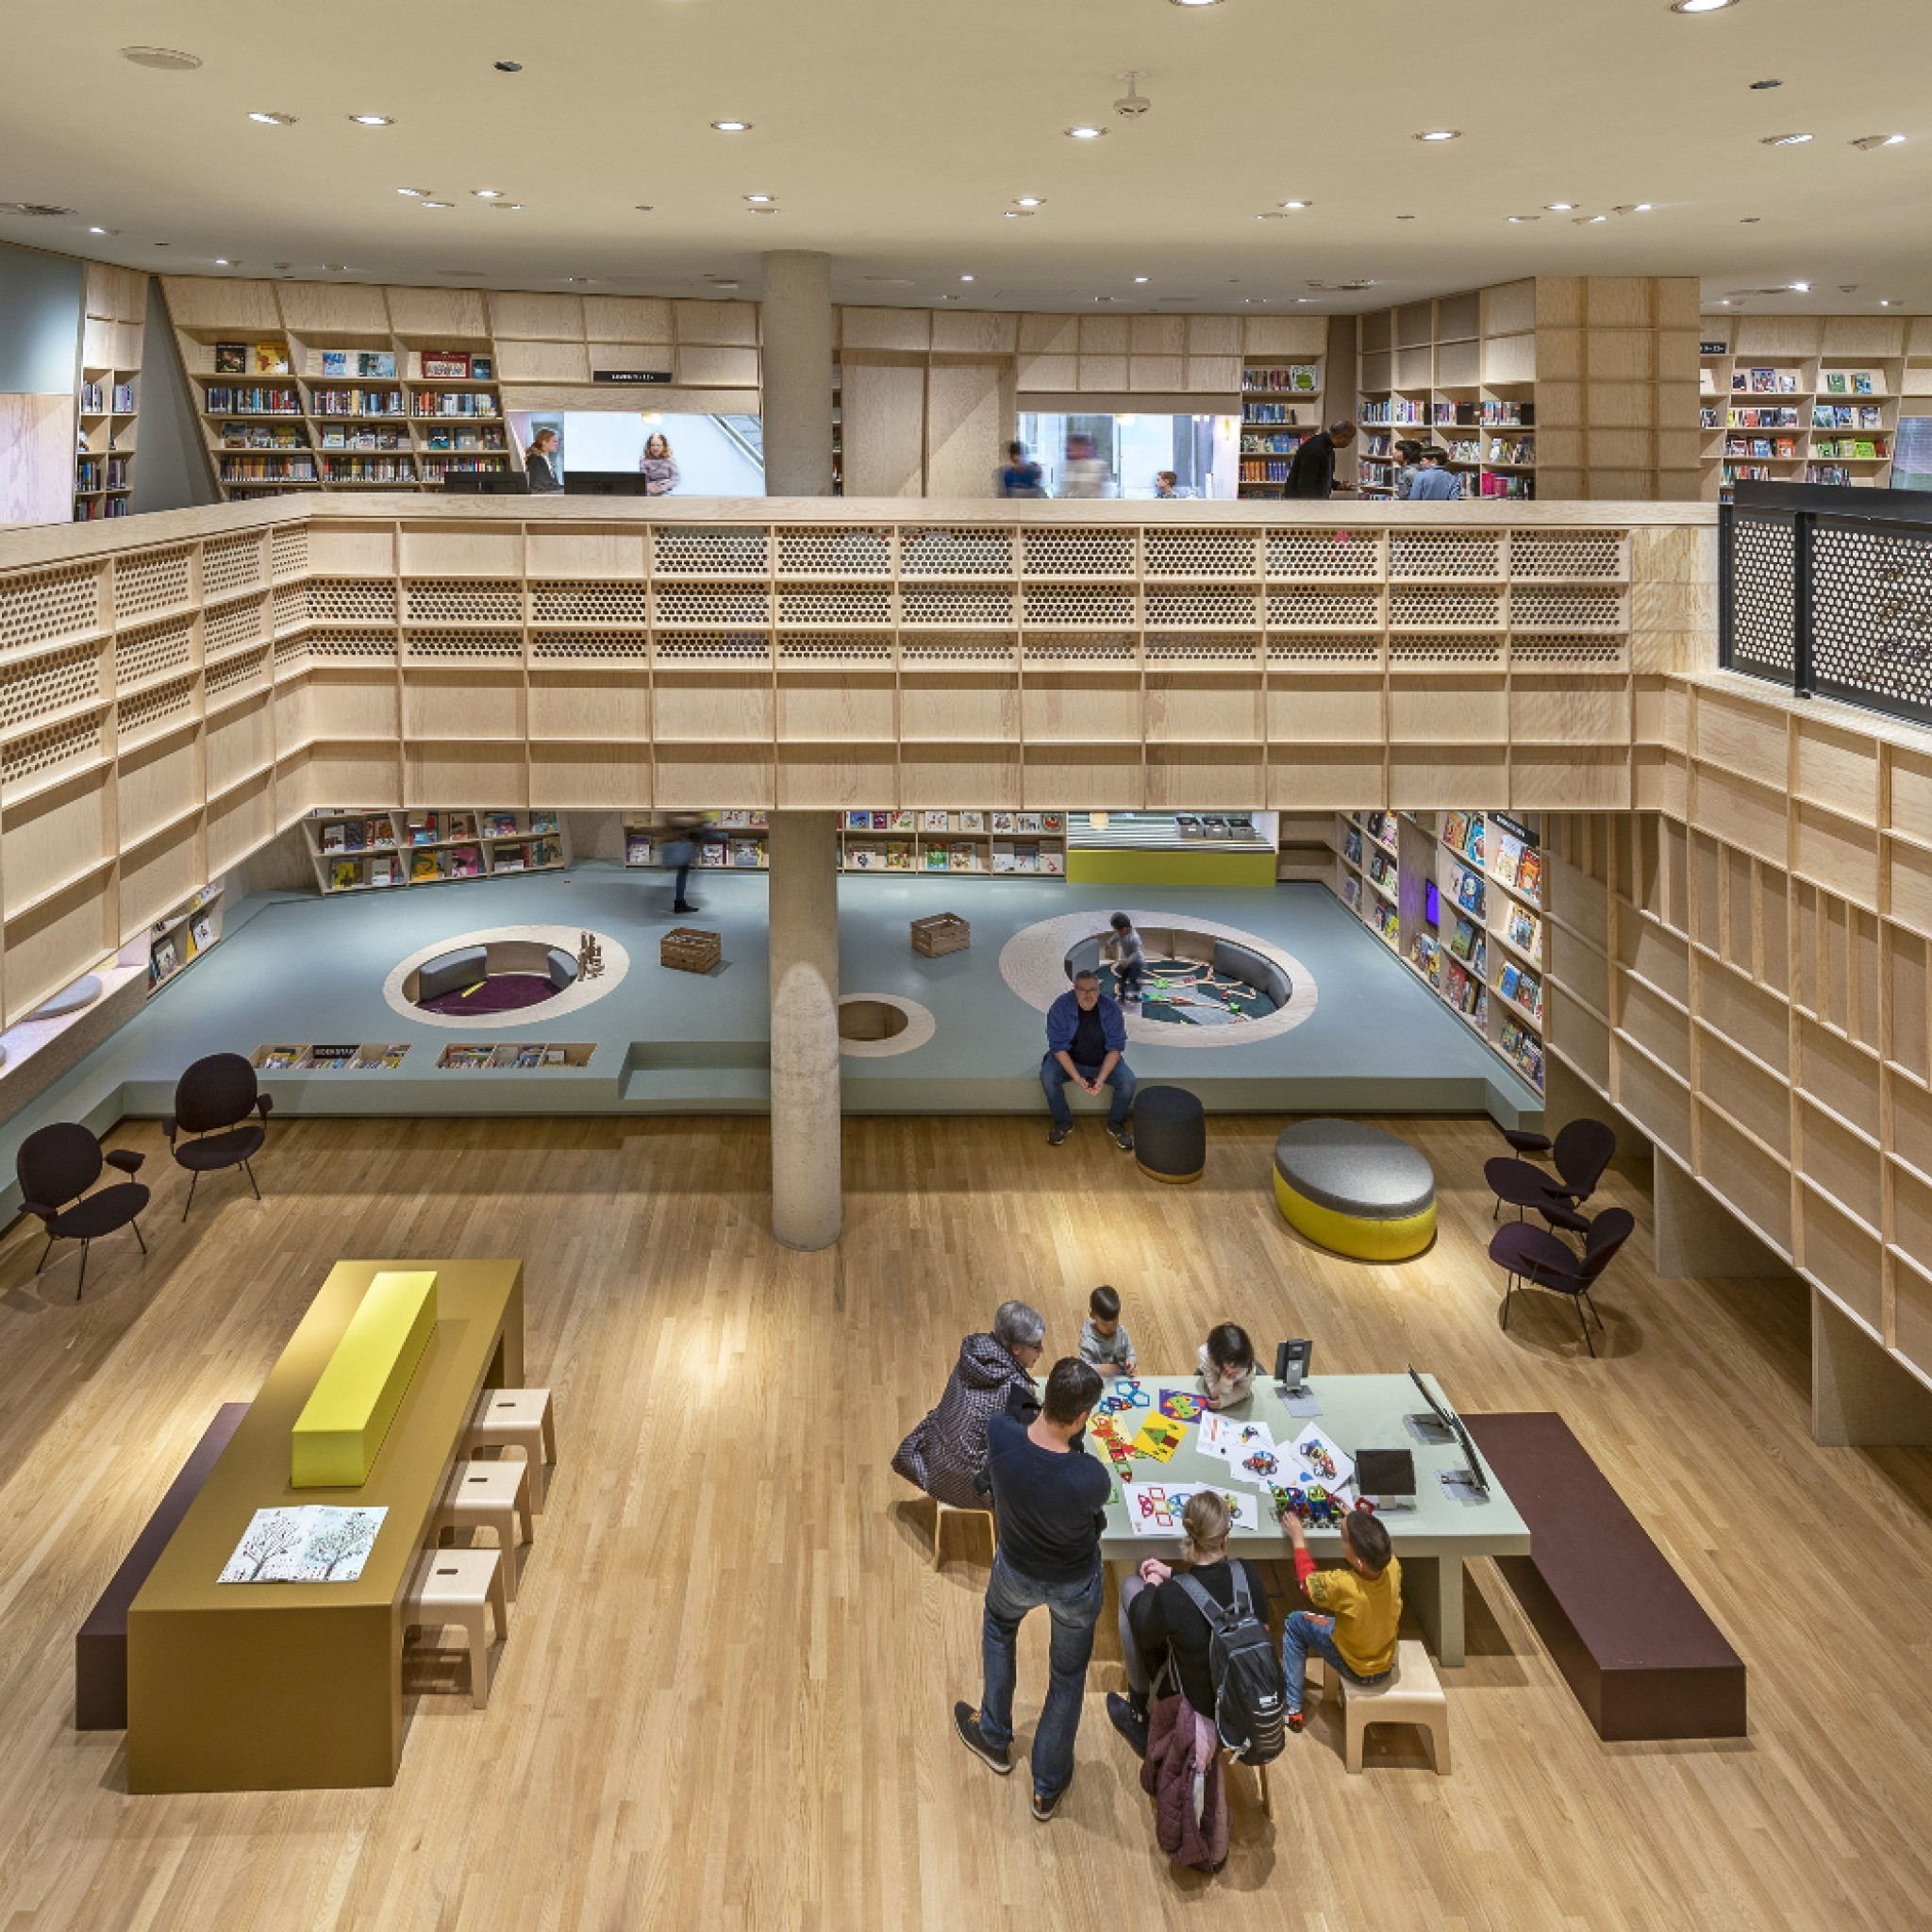 The interior emphasizes the architecture and offers space for more than just books: the children can curl up in the window niches, play in a chill net or experiment with techniques